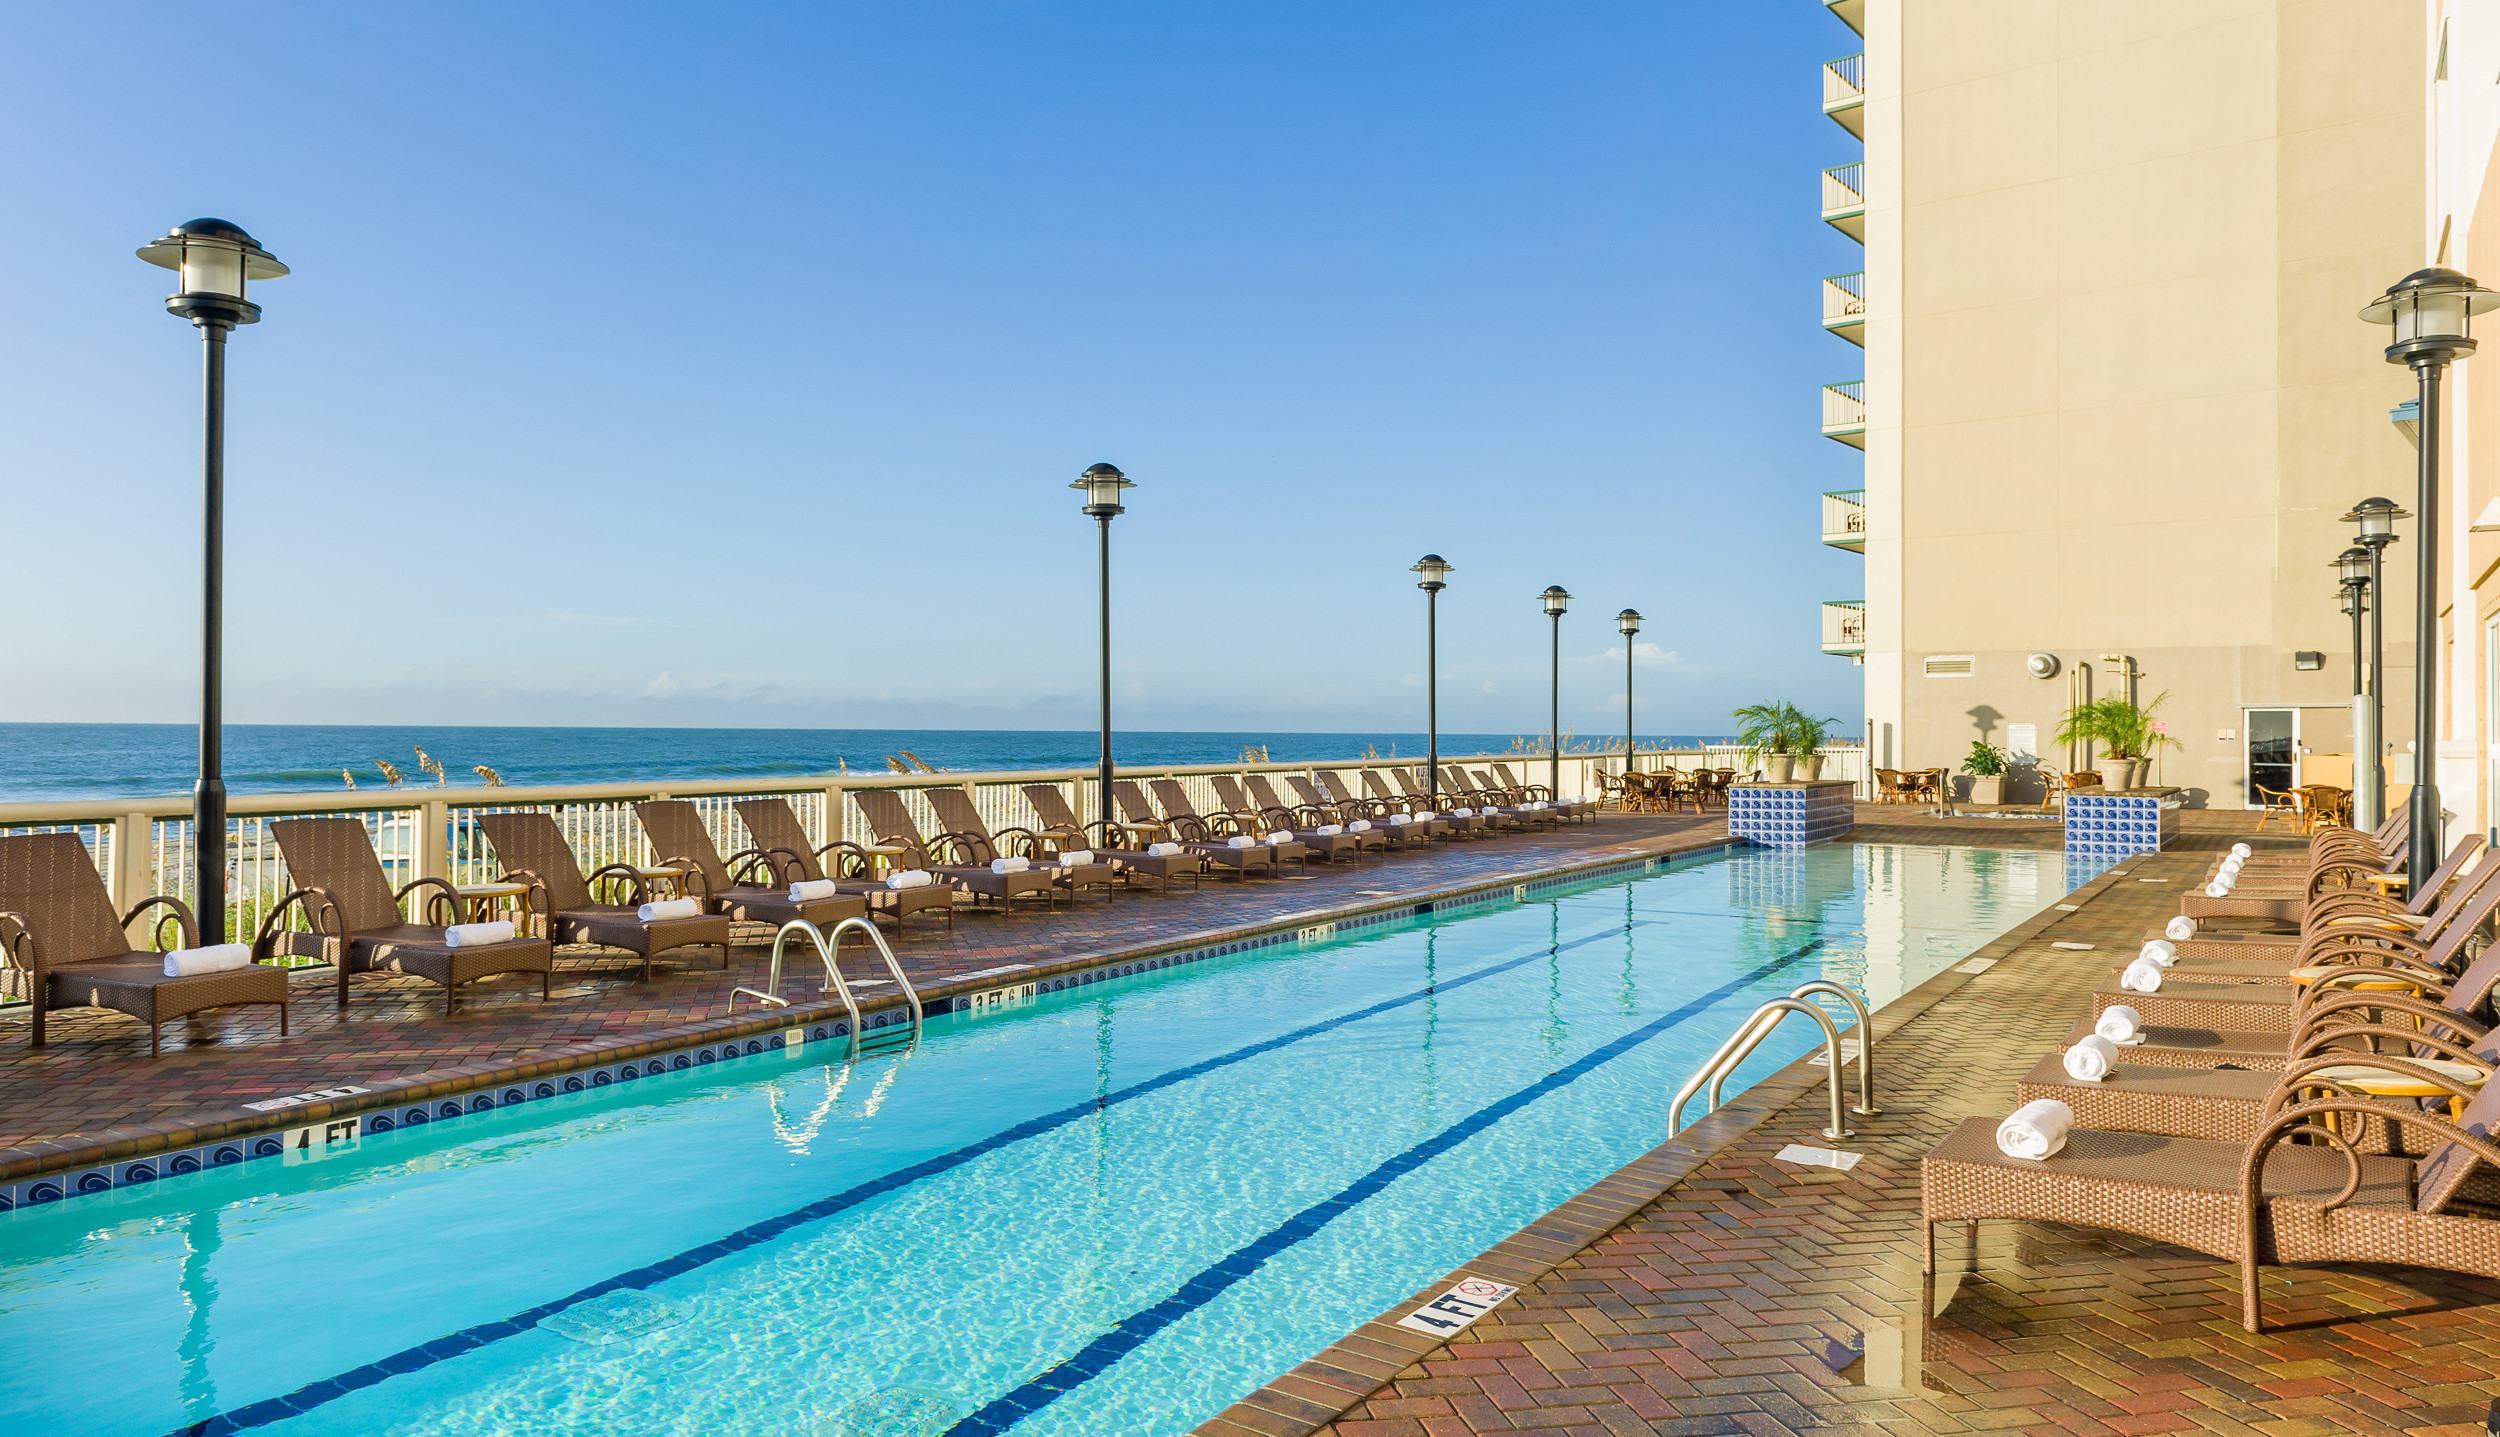 Heated Outdoor Pool With Lounge Chairs Overlooking Beach Westgate Myrtle Beach Oceanfront Resort